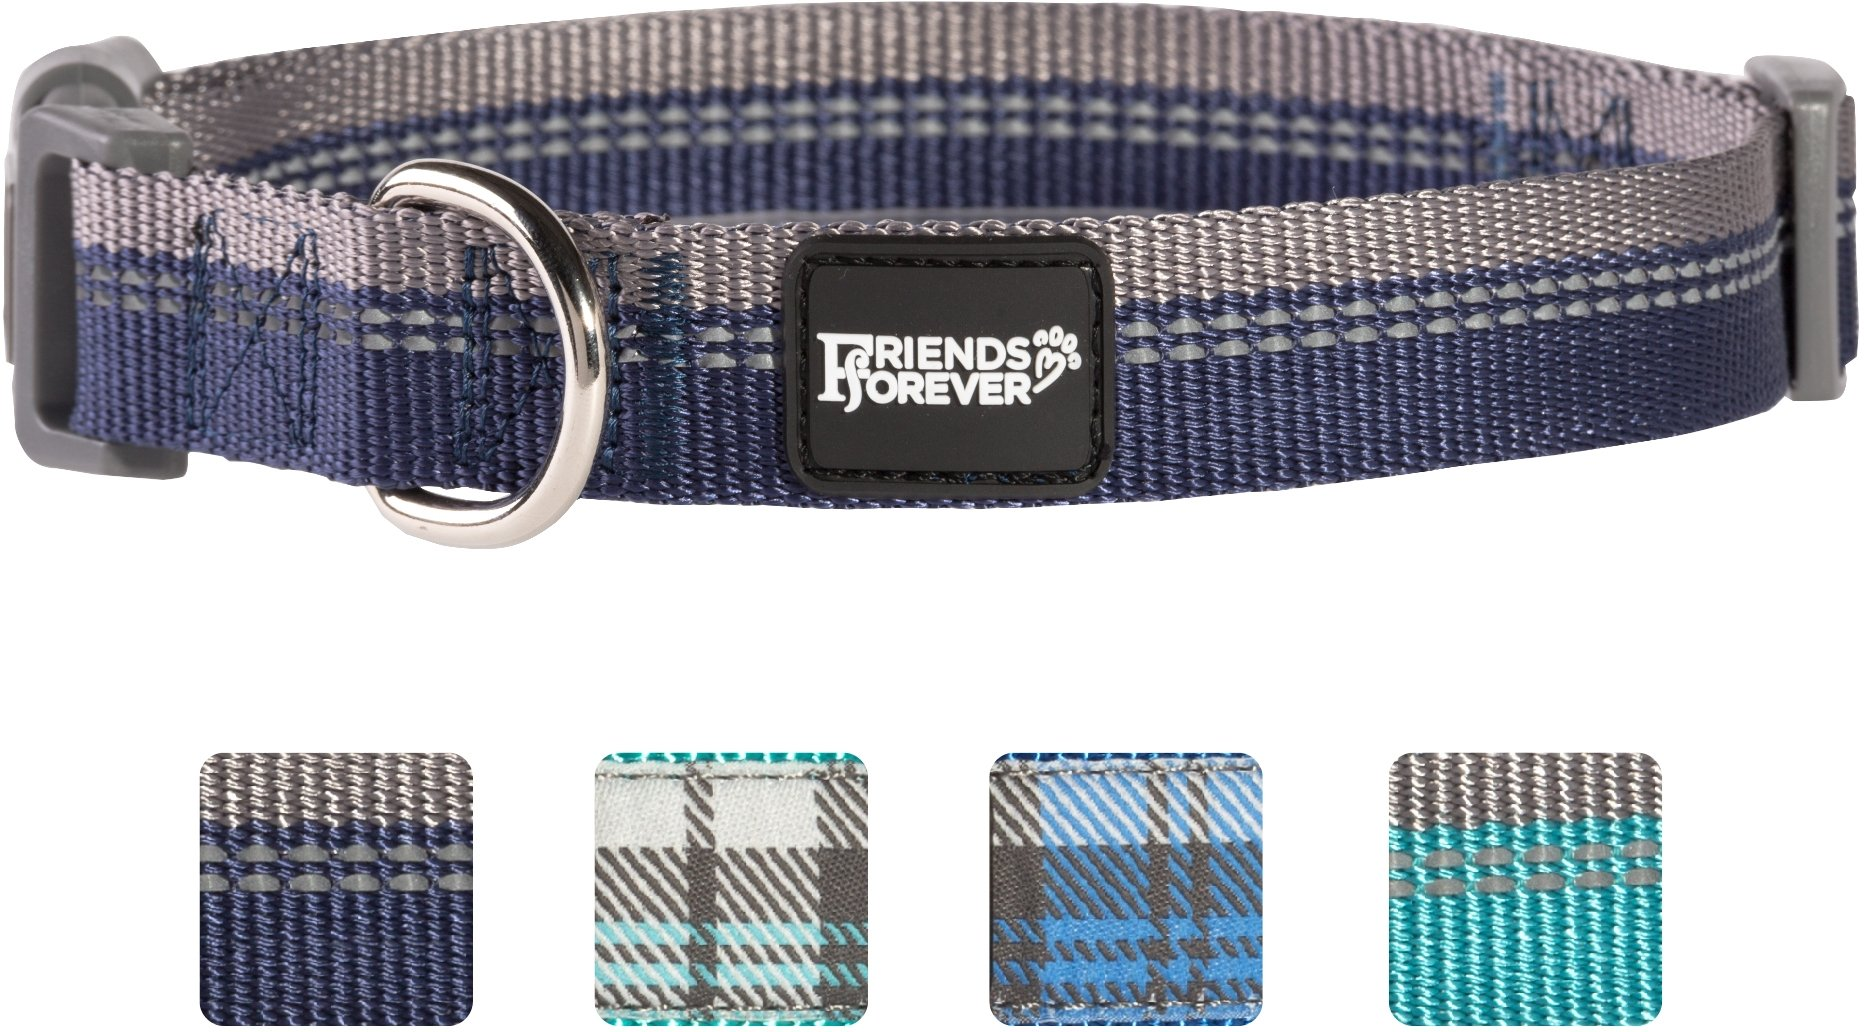 Friends Forever Plaid Dog Collar for Dogs, Fashion Reflective Pattern Cute Puppy Collar, 11-16'' Small Navy by Friends Forever